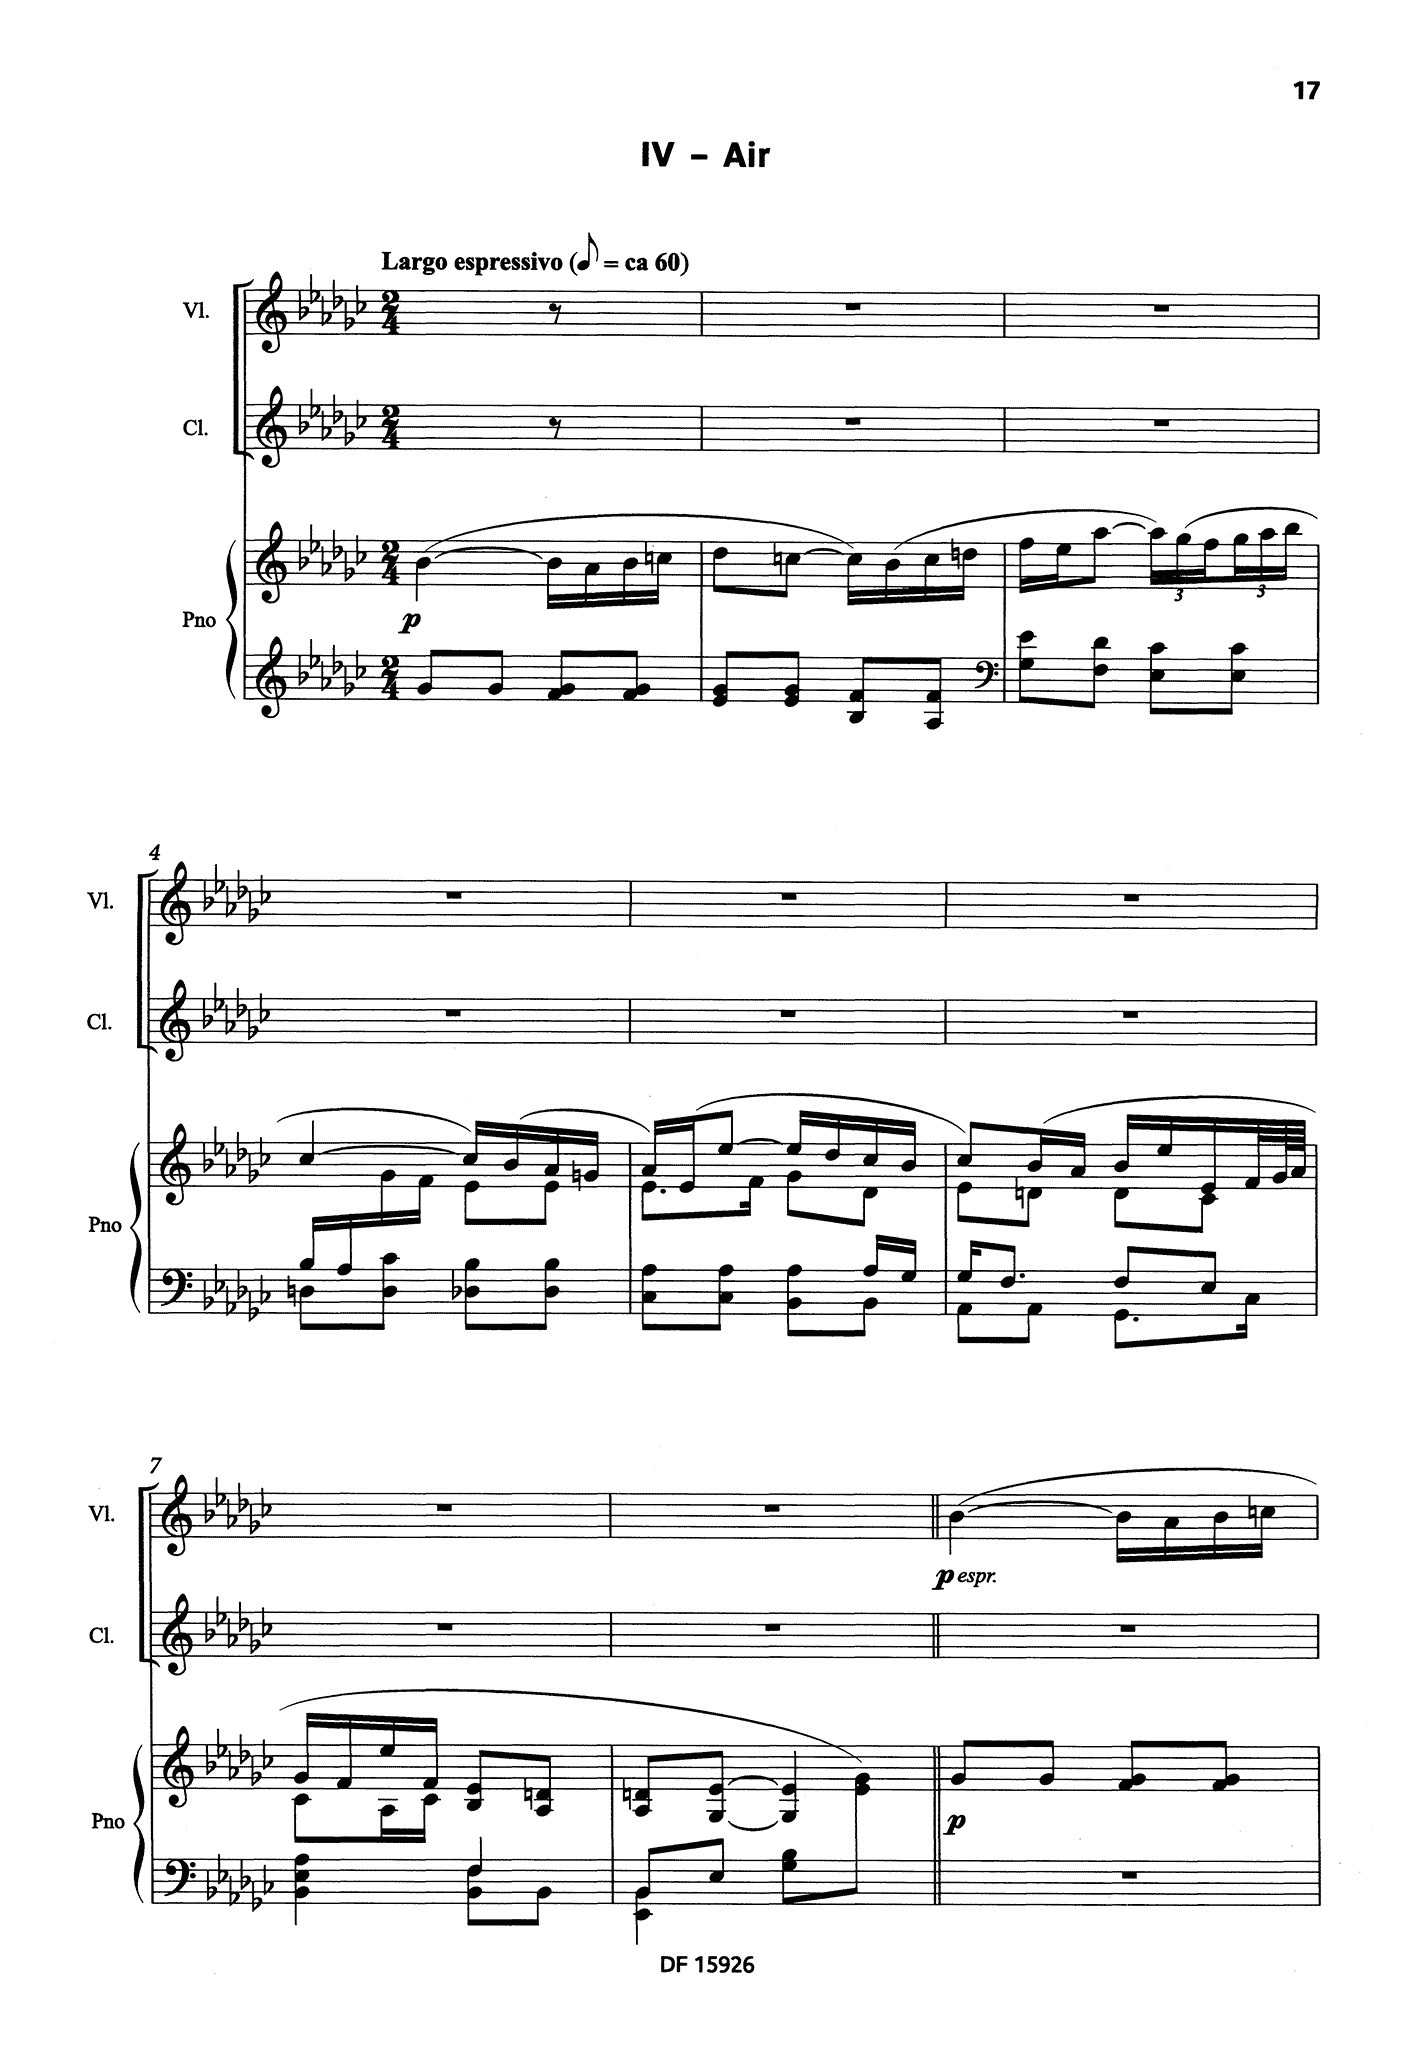 Bacri A Smiling Suite, Op. 100b - Movement 4